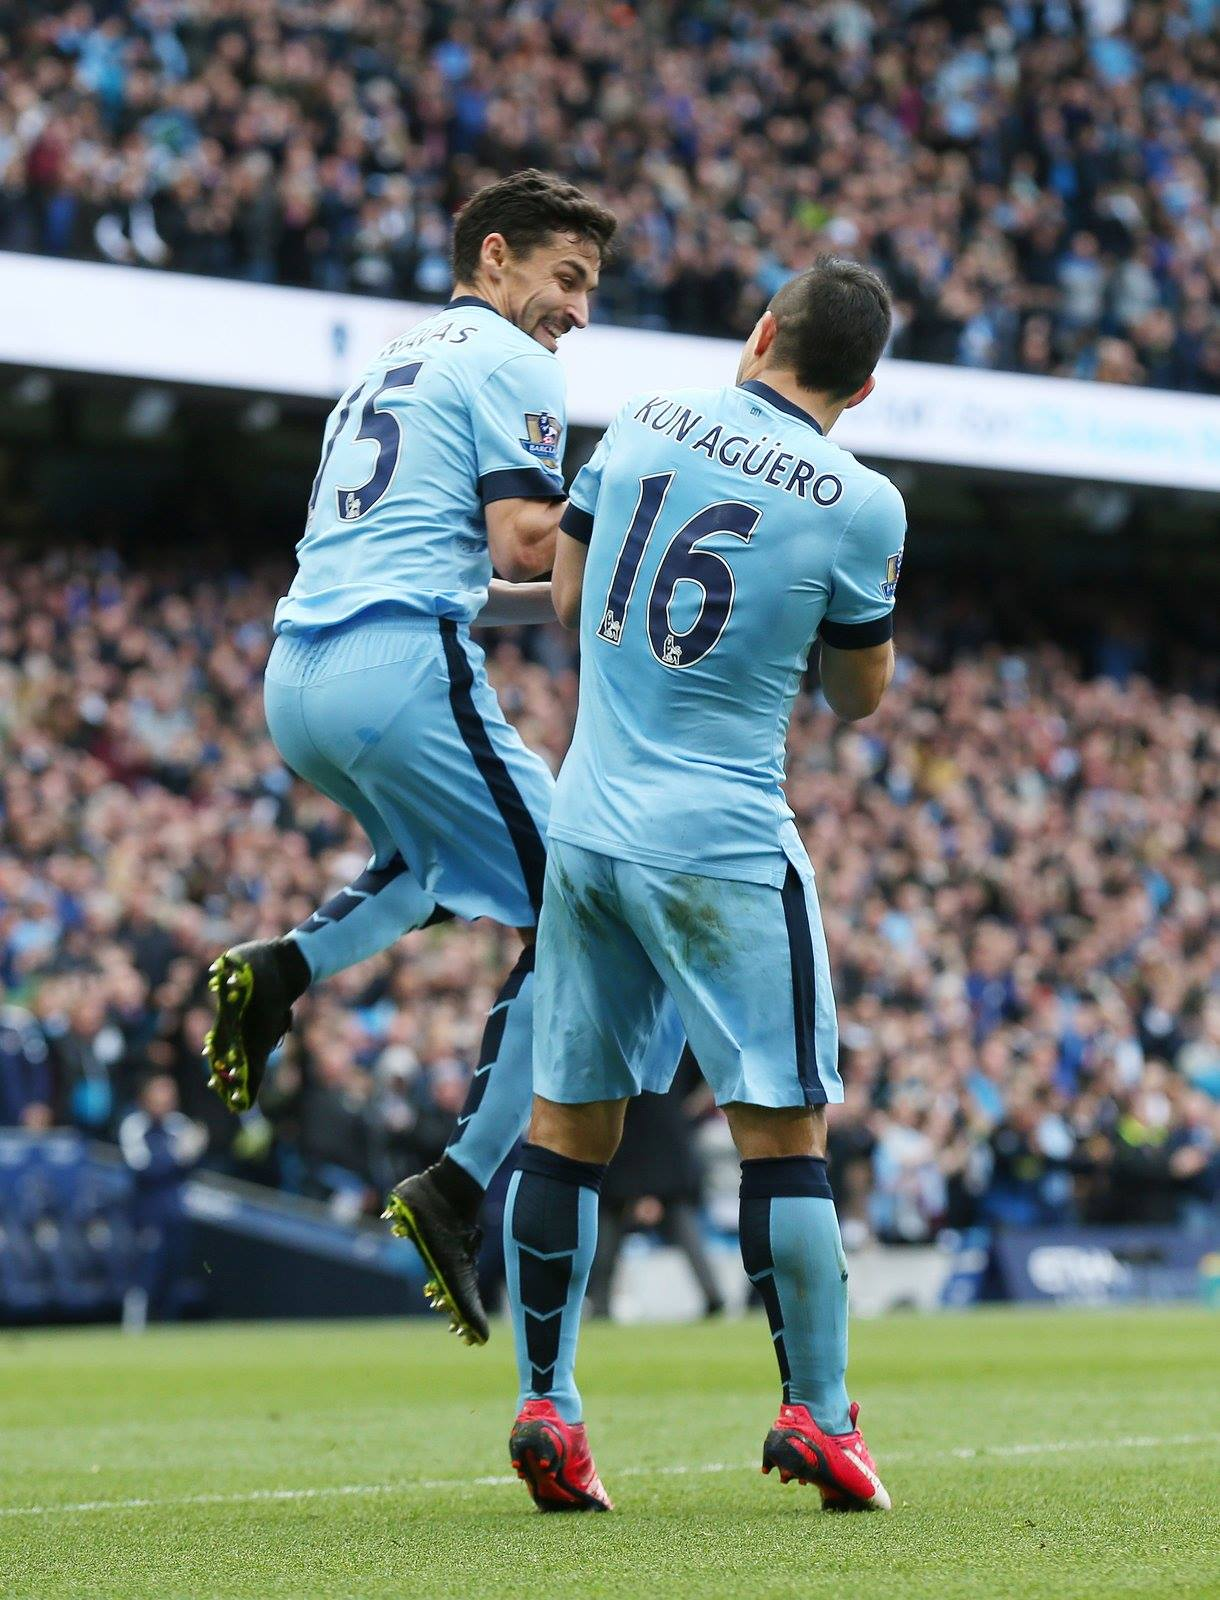 Fancy bumping into you - Jesus and Sergio celebrate against West Ham. Courtesy@MCFC